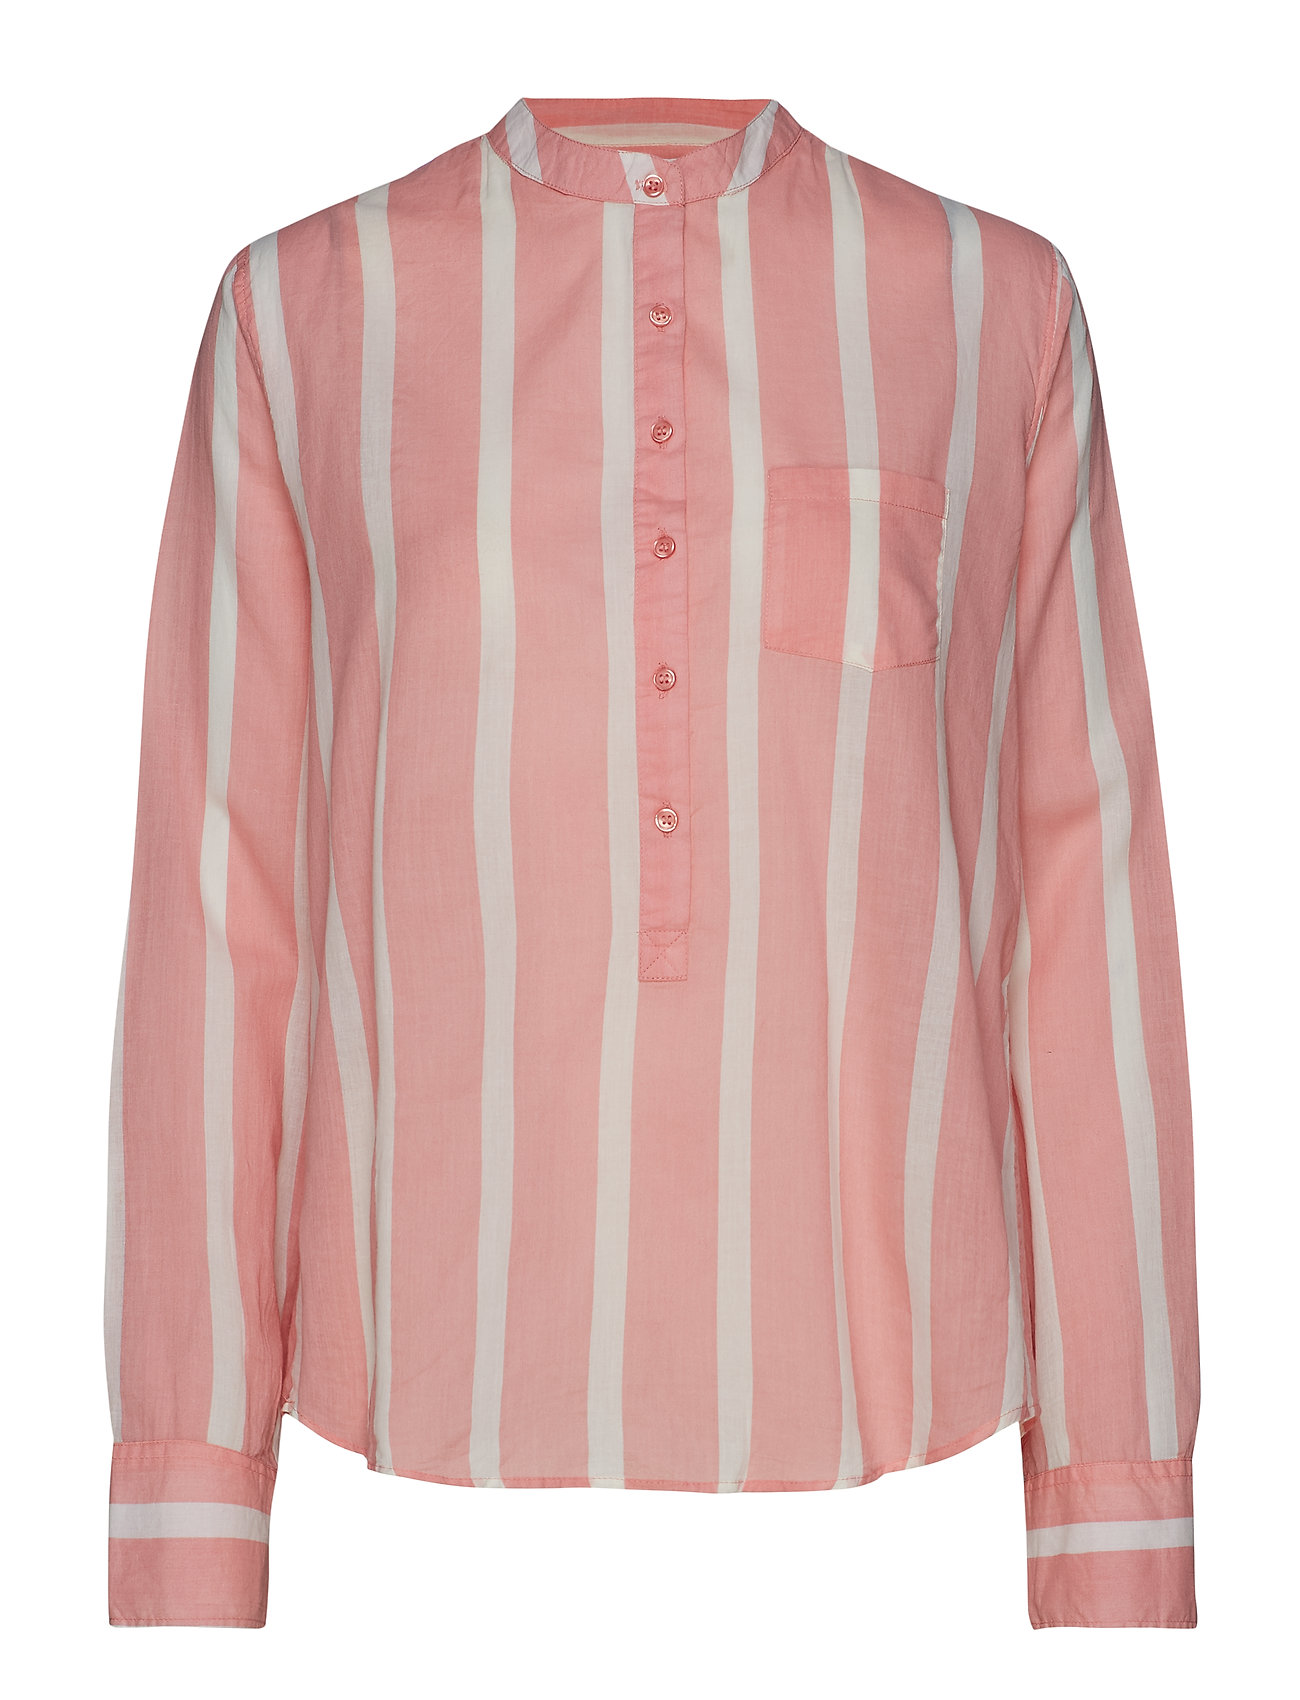 nué notes Bianca Shirt - CORAL BLUSH